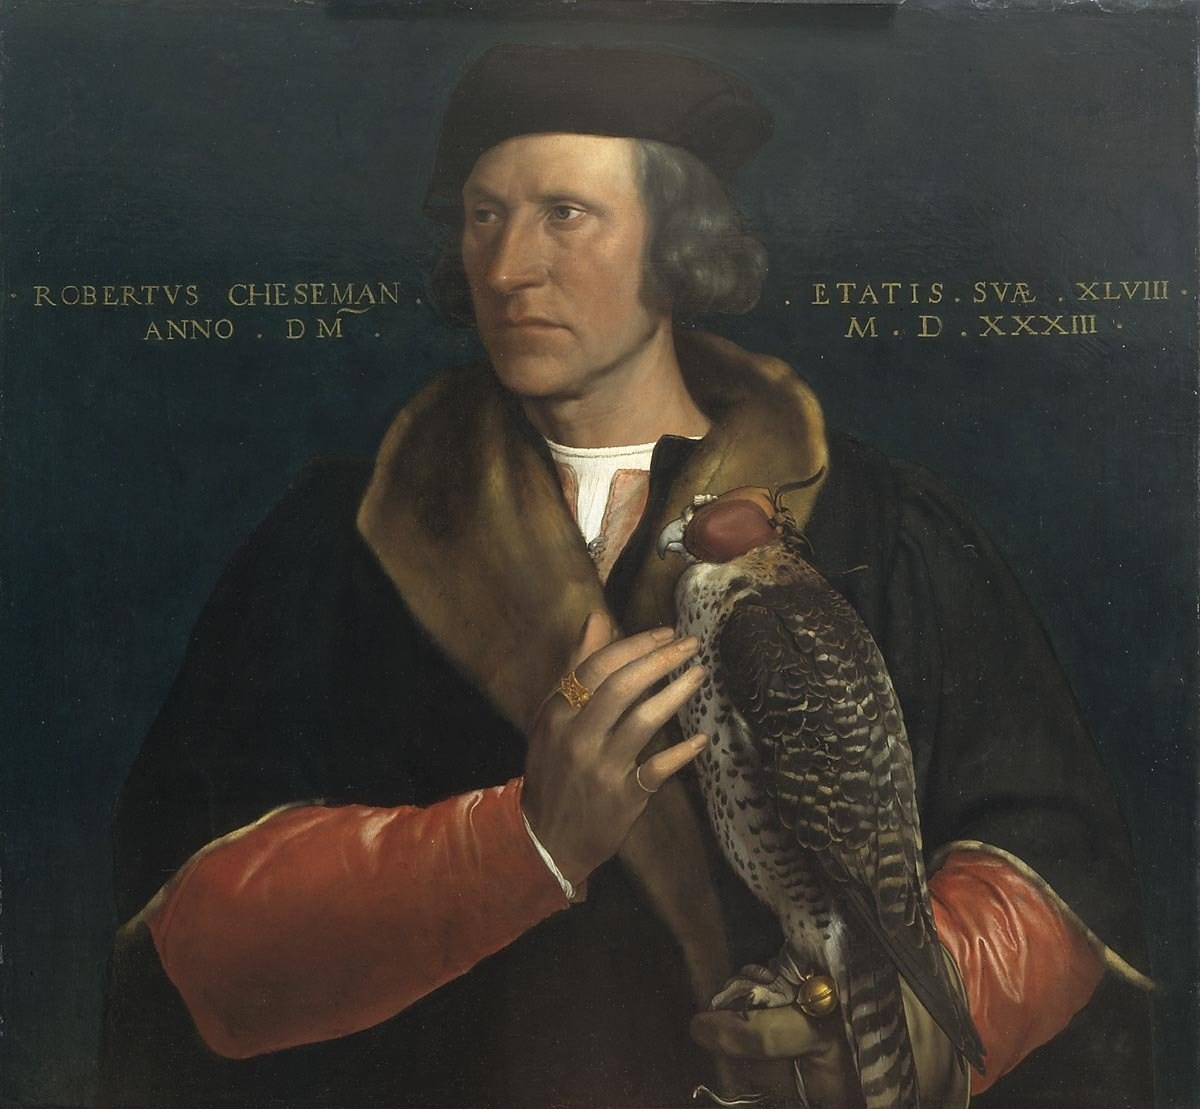 File:Portrait of Robert Cheseman (1485-1547) by Hans Holbein (II